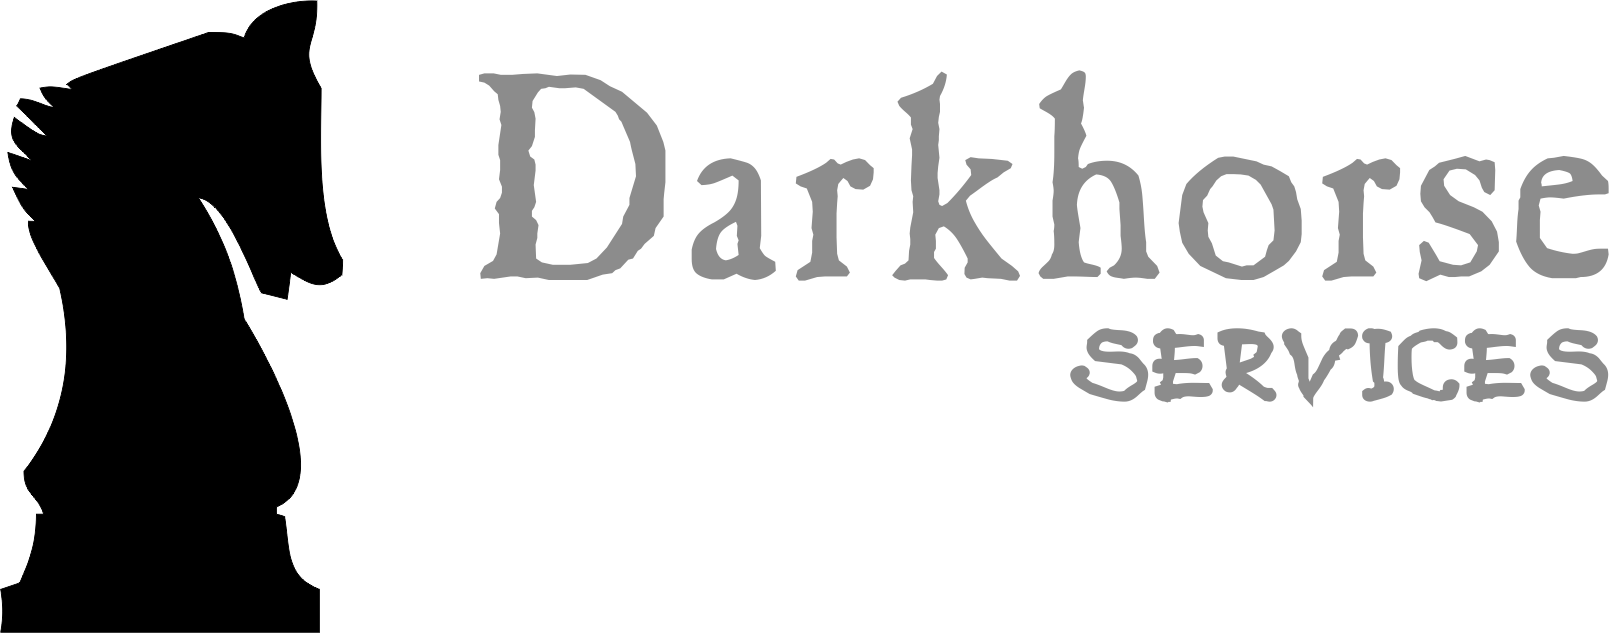 darkhorse services.png